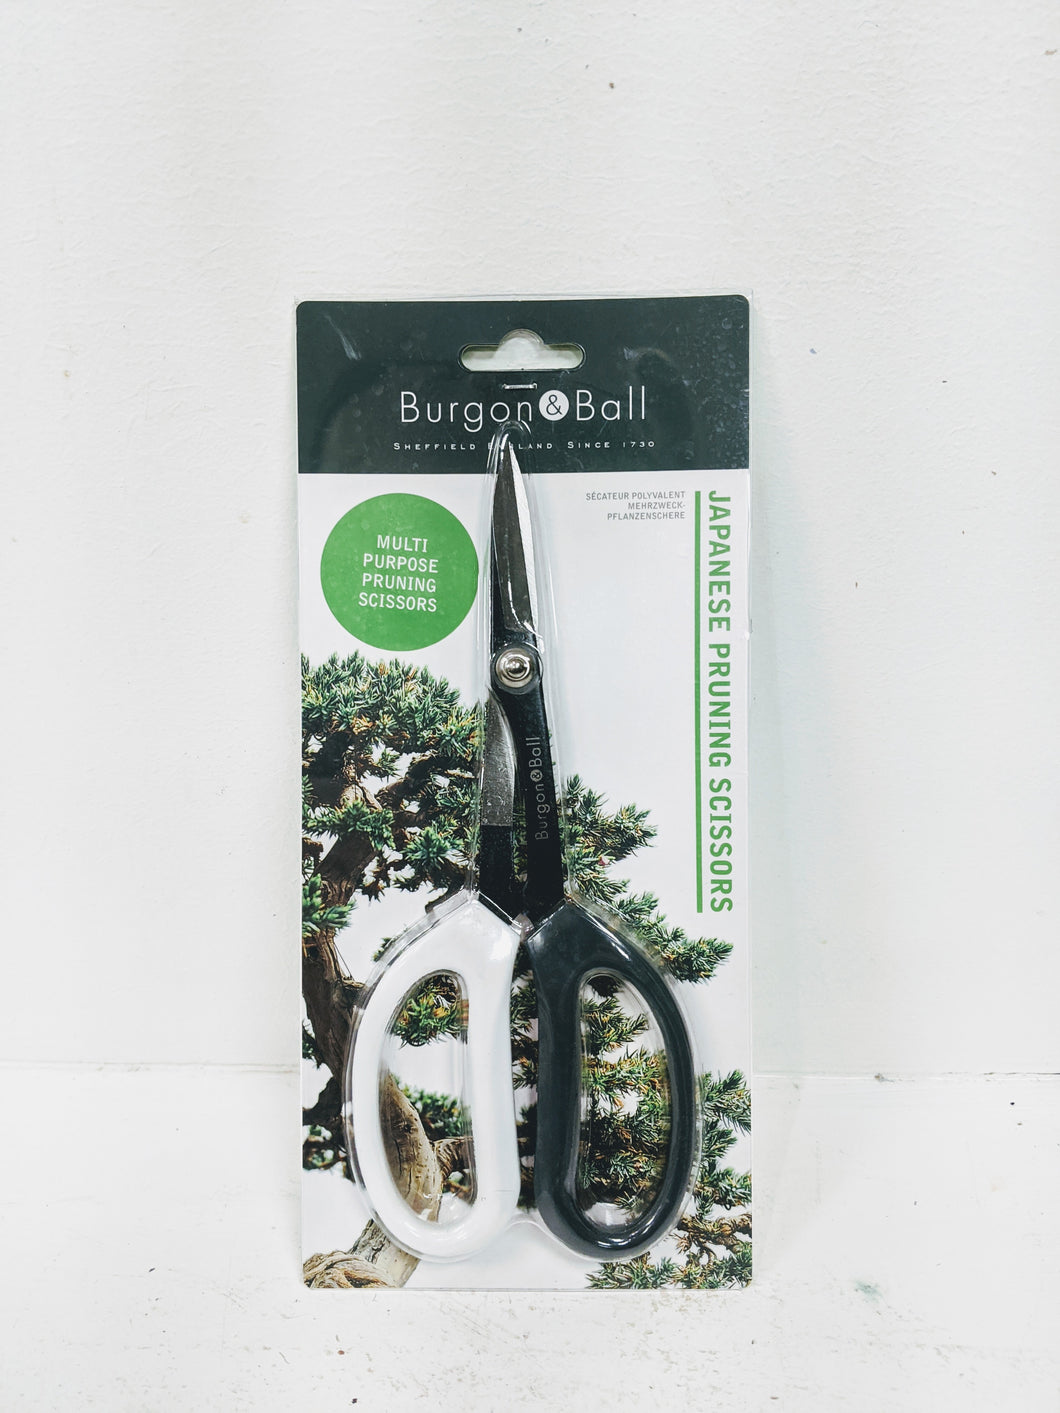 Burgon & Ball pruning scissors